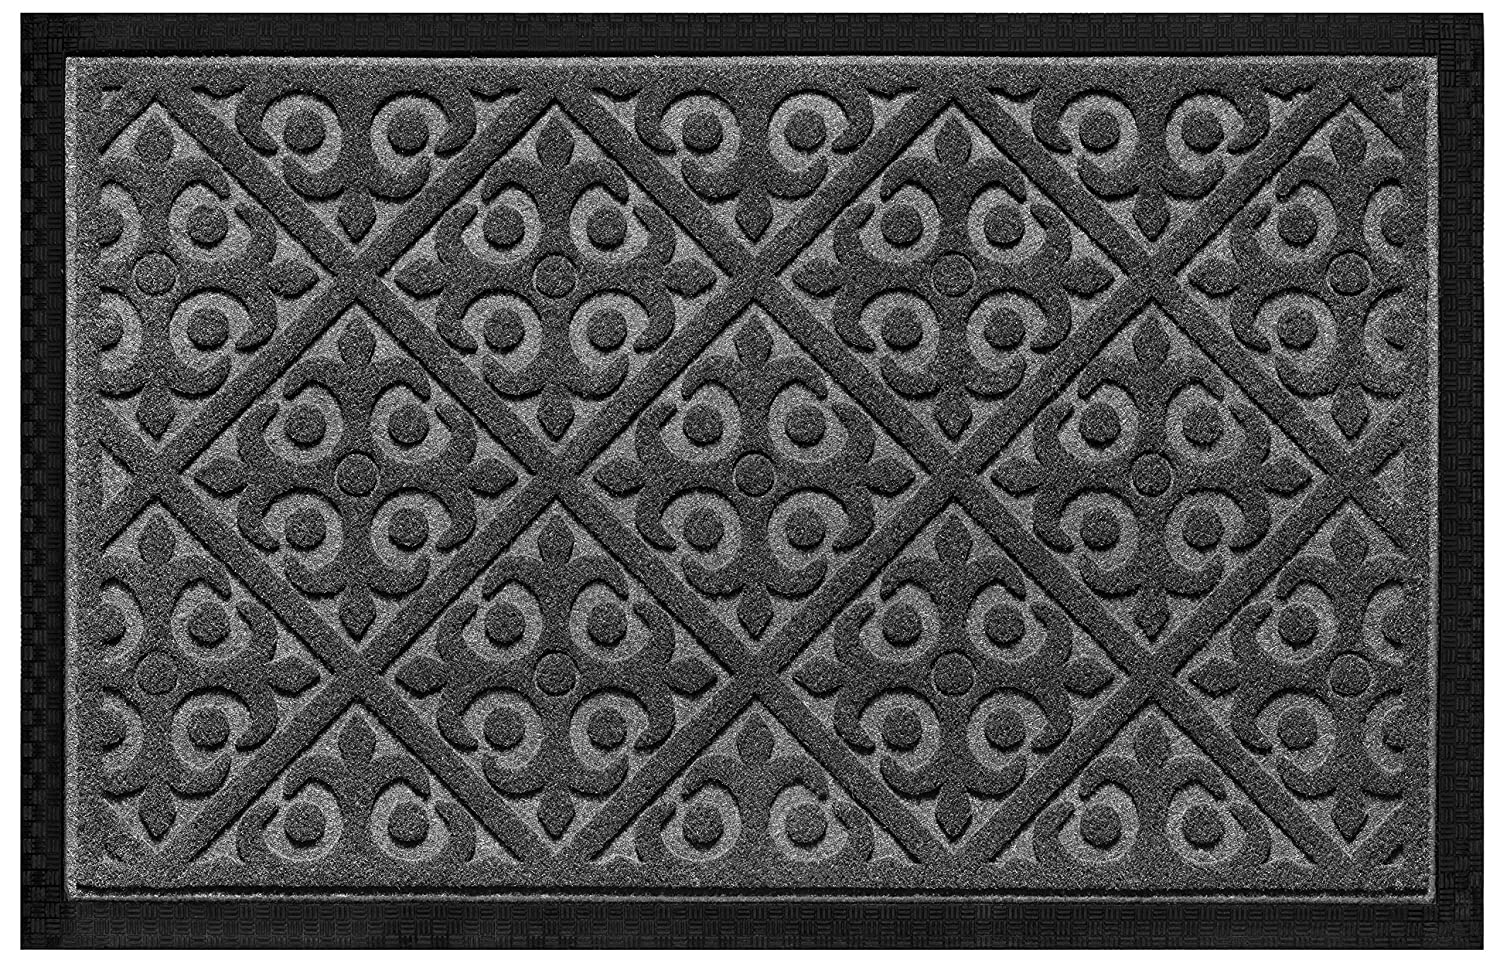 Amazon.com  Elogio Door Mat Indoor Outdoor Doormats Outside Effective Scraping of Dirt Patio Grass Moisture Snow Dust Grit Removal Ideal Low Profile ...  sc 1 st  Amazon.com & Amazon.com : Elogio Door Mat Indoor Outdoor Doormats Outside ... pezcame.com